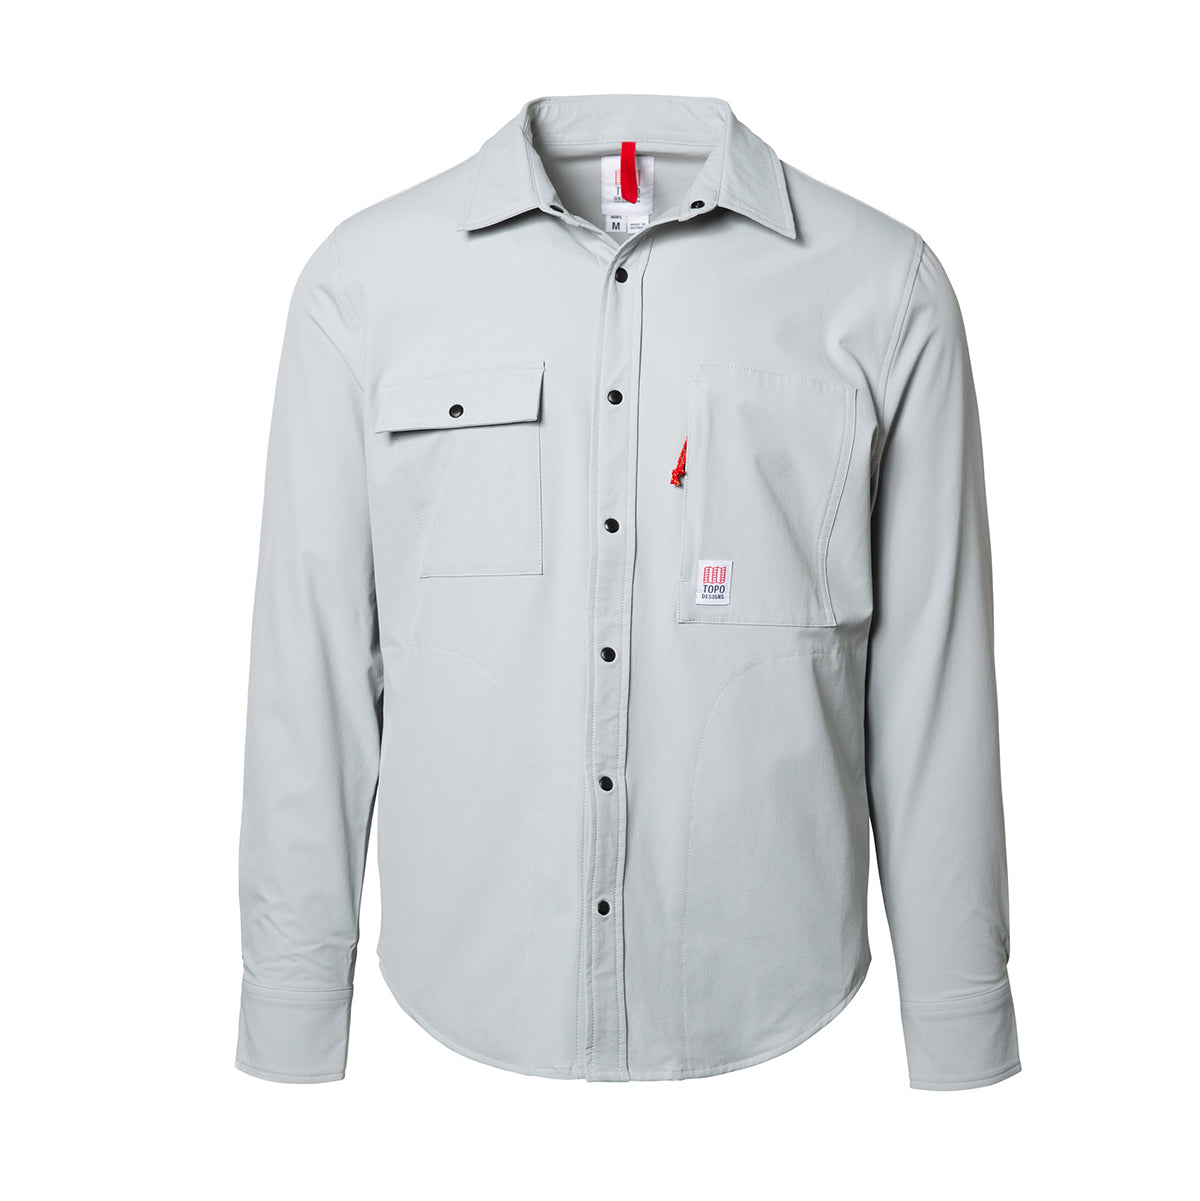 Topo Designs Men's Breaker Shirt Jacket - Sale